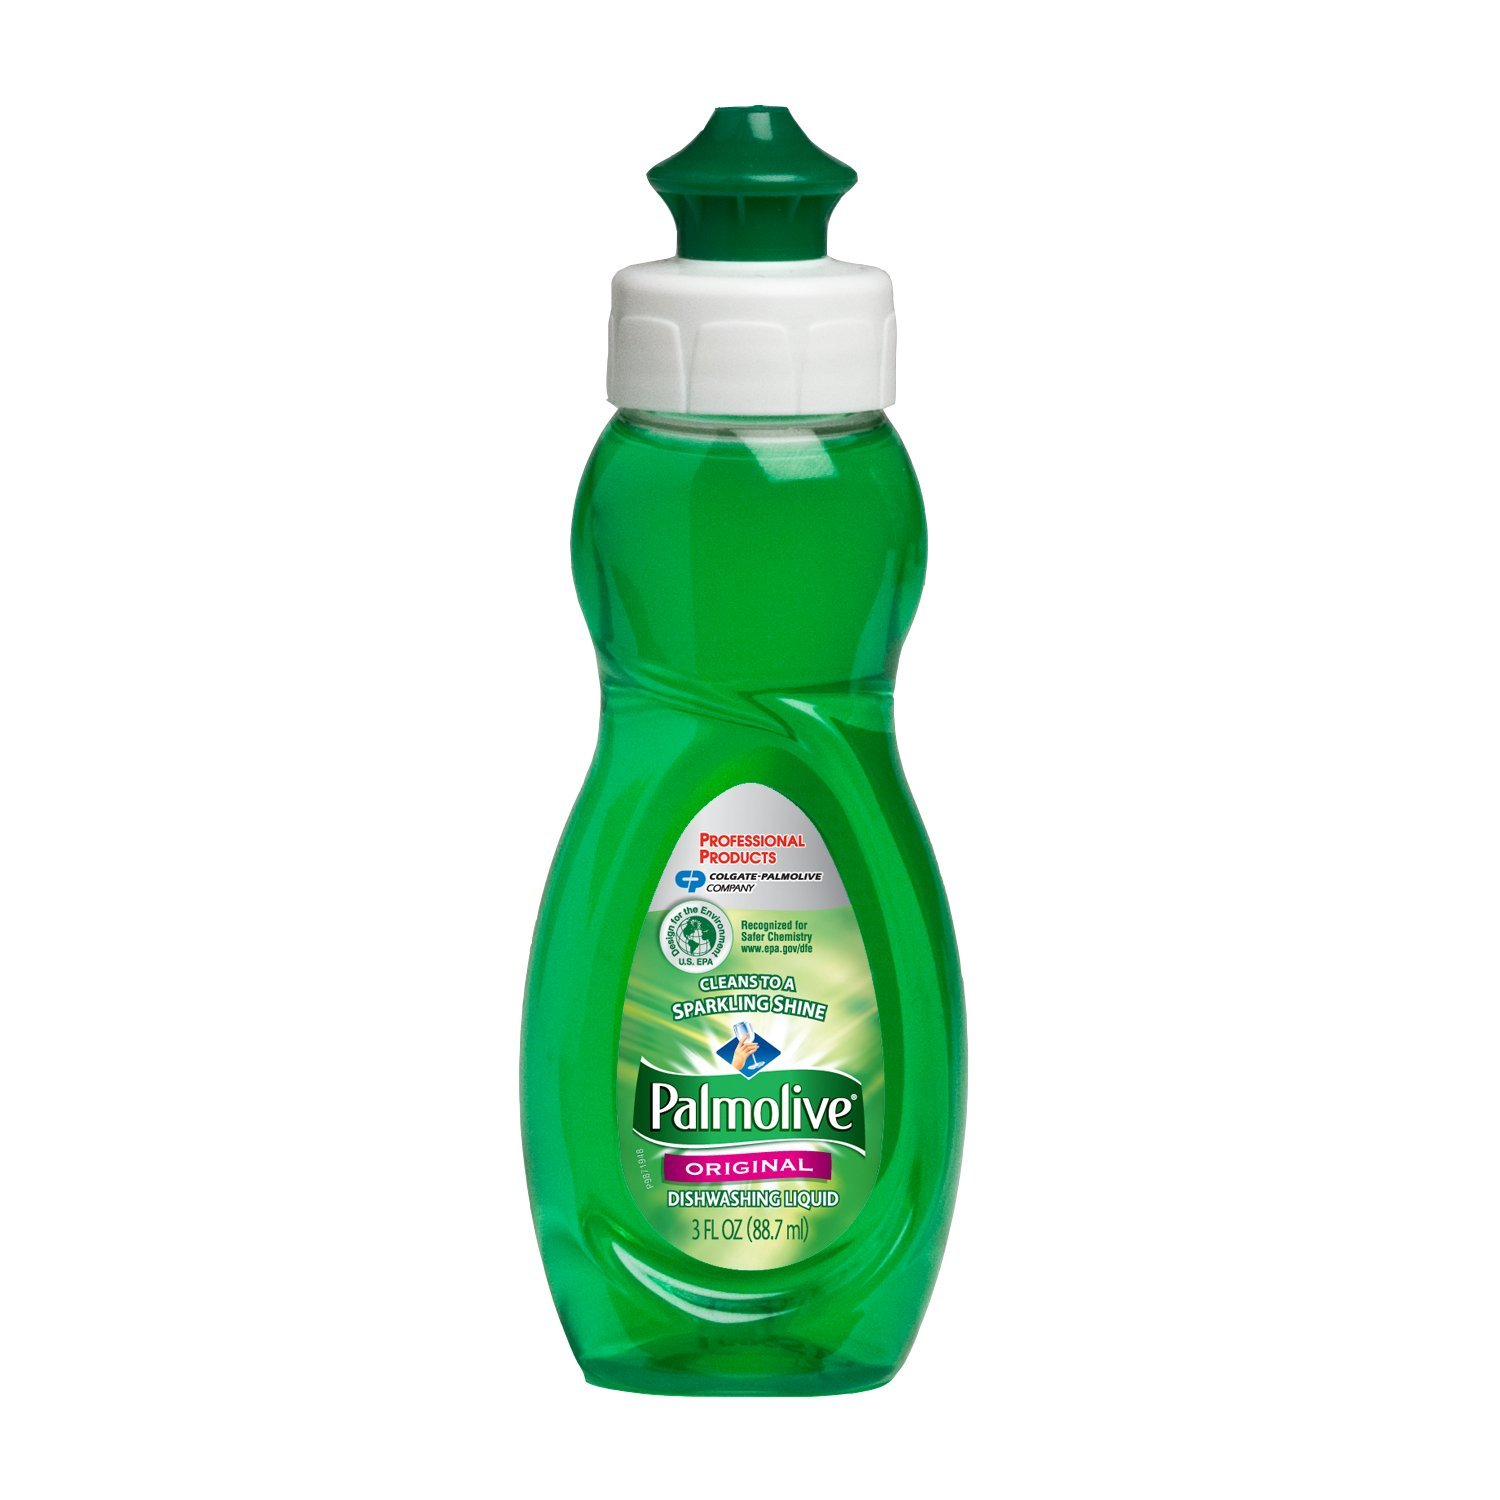 Colgate/Palmolive Green 3oz Palmolive Manual Dishwashing Liquid 01417